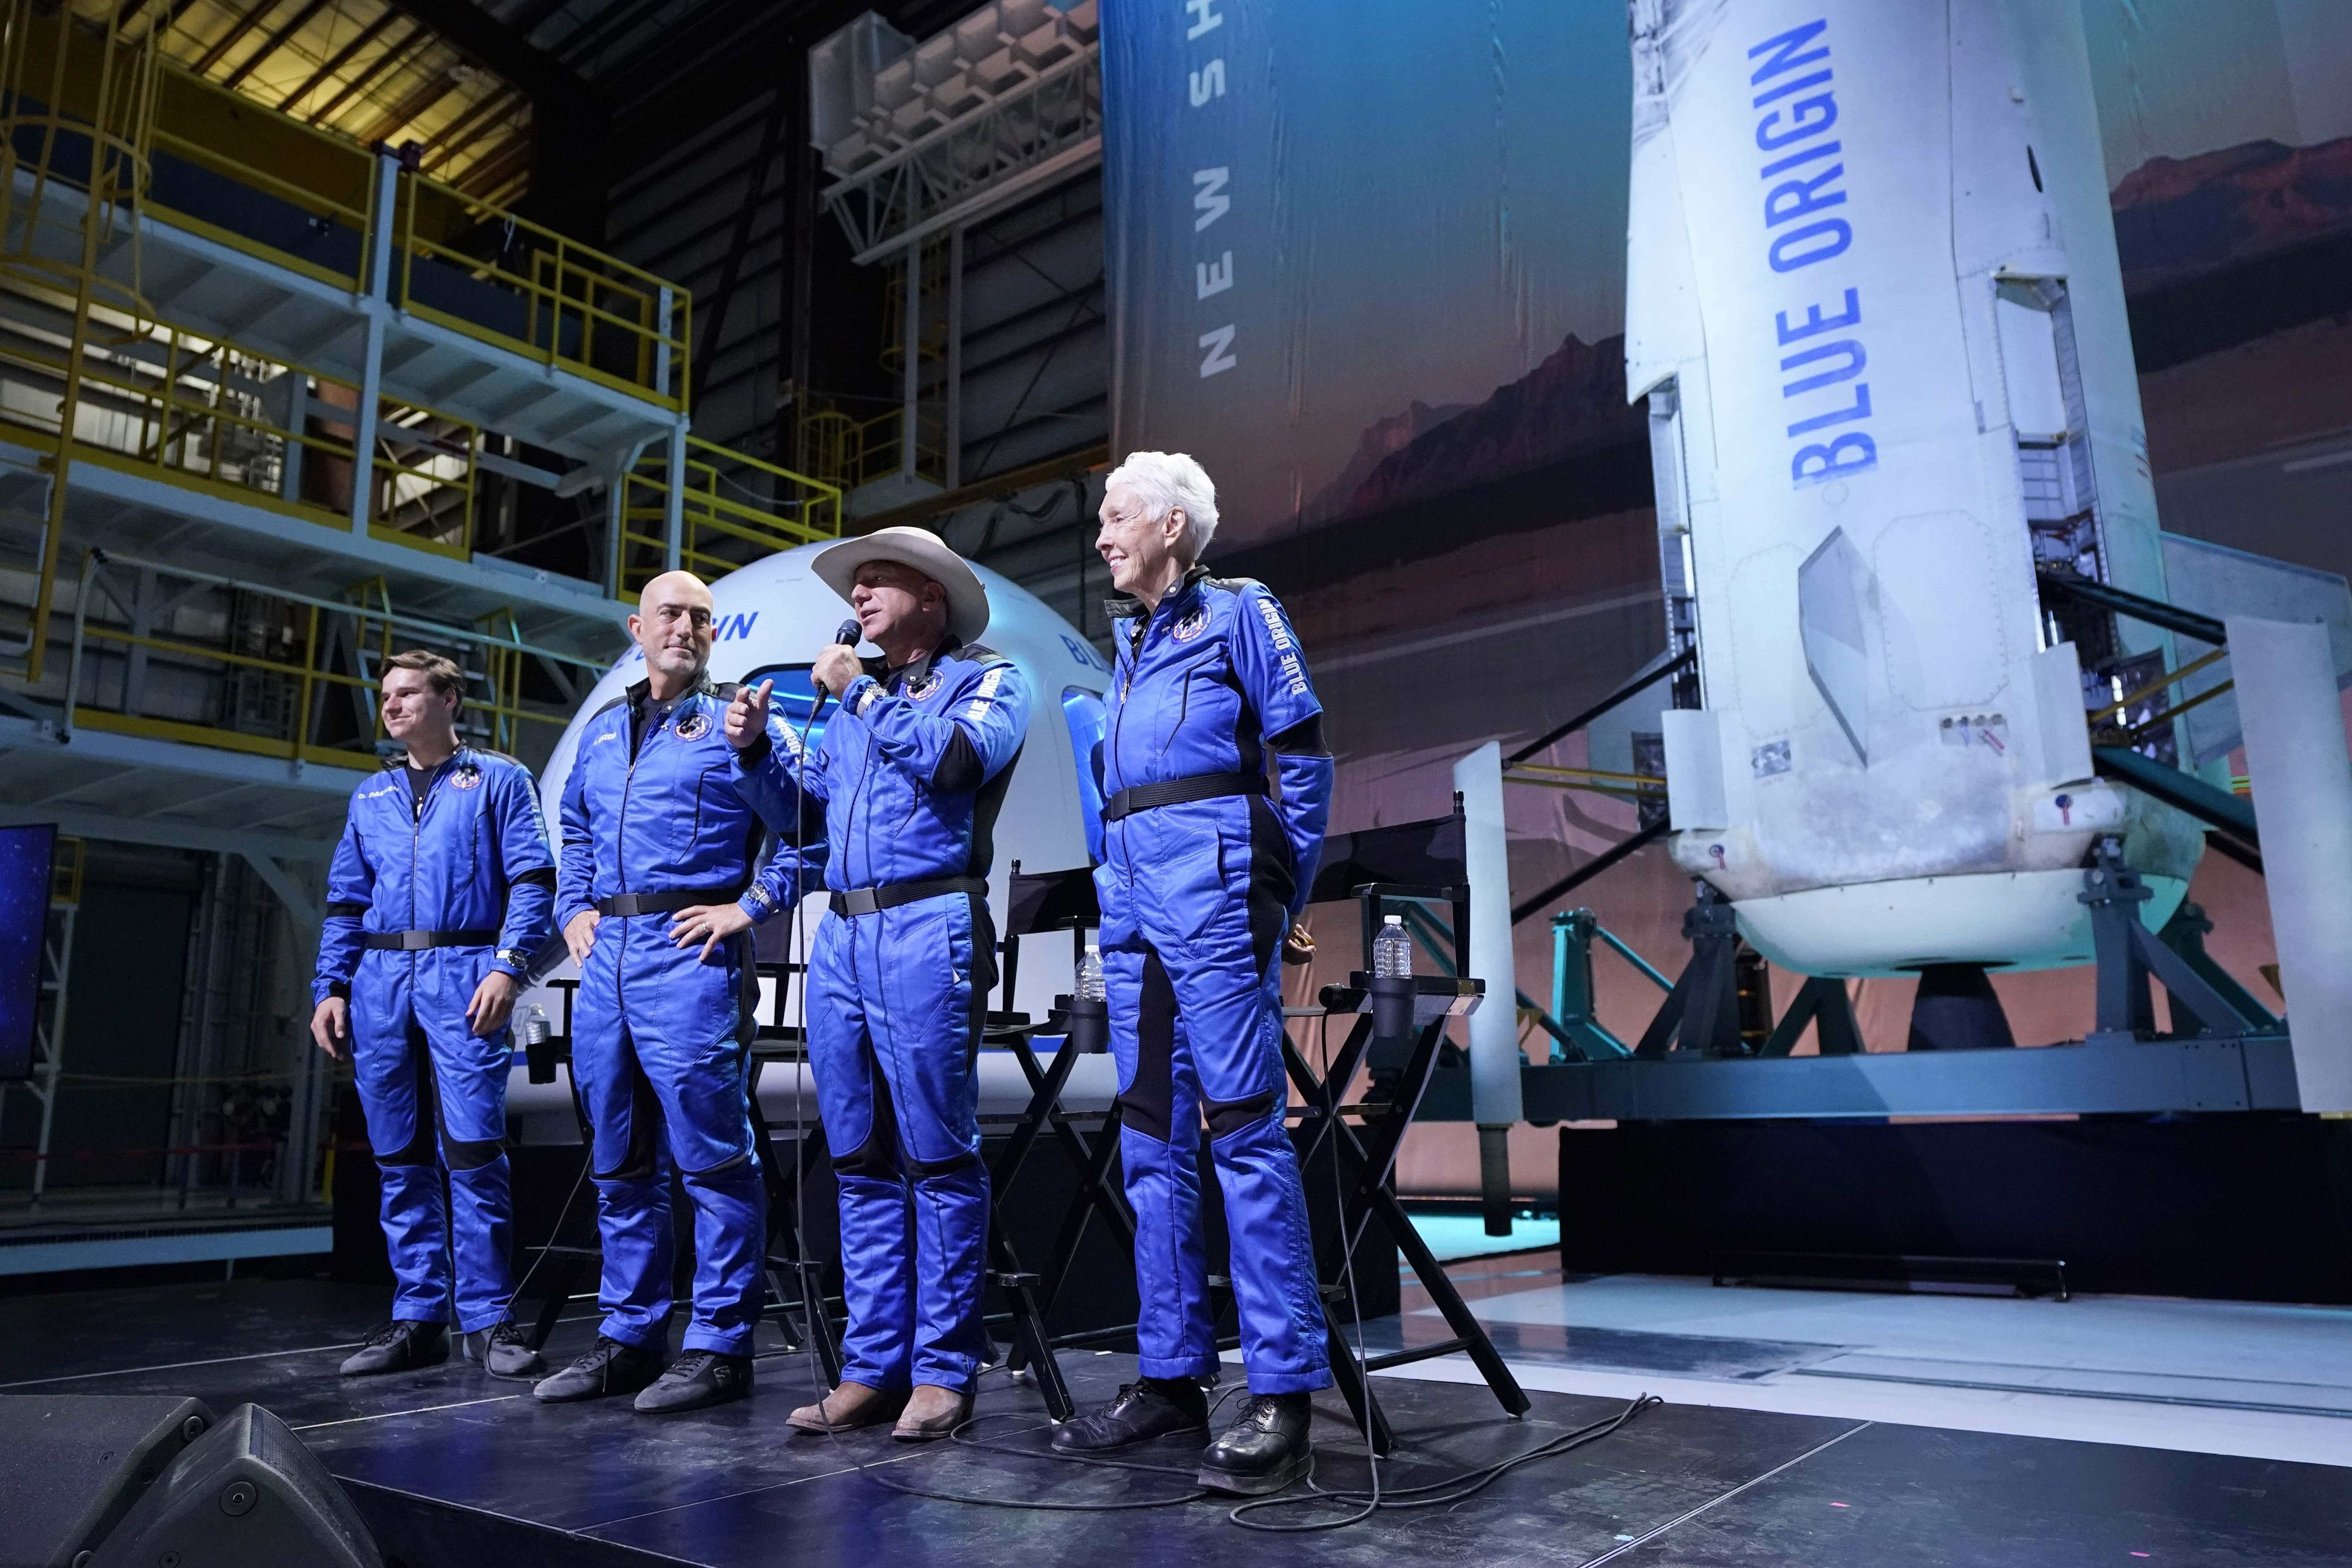 Oliver Daemen, from left, Mark Bezos, and Wally Funk, right, listen as Jeff Bezos, second from right, founder of Amazon and space tourism company Blue Origin, makes comments after their flight experience from the spaceport near Van Horn, Texas, Tuesday, July 20, 2021.